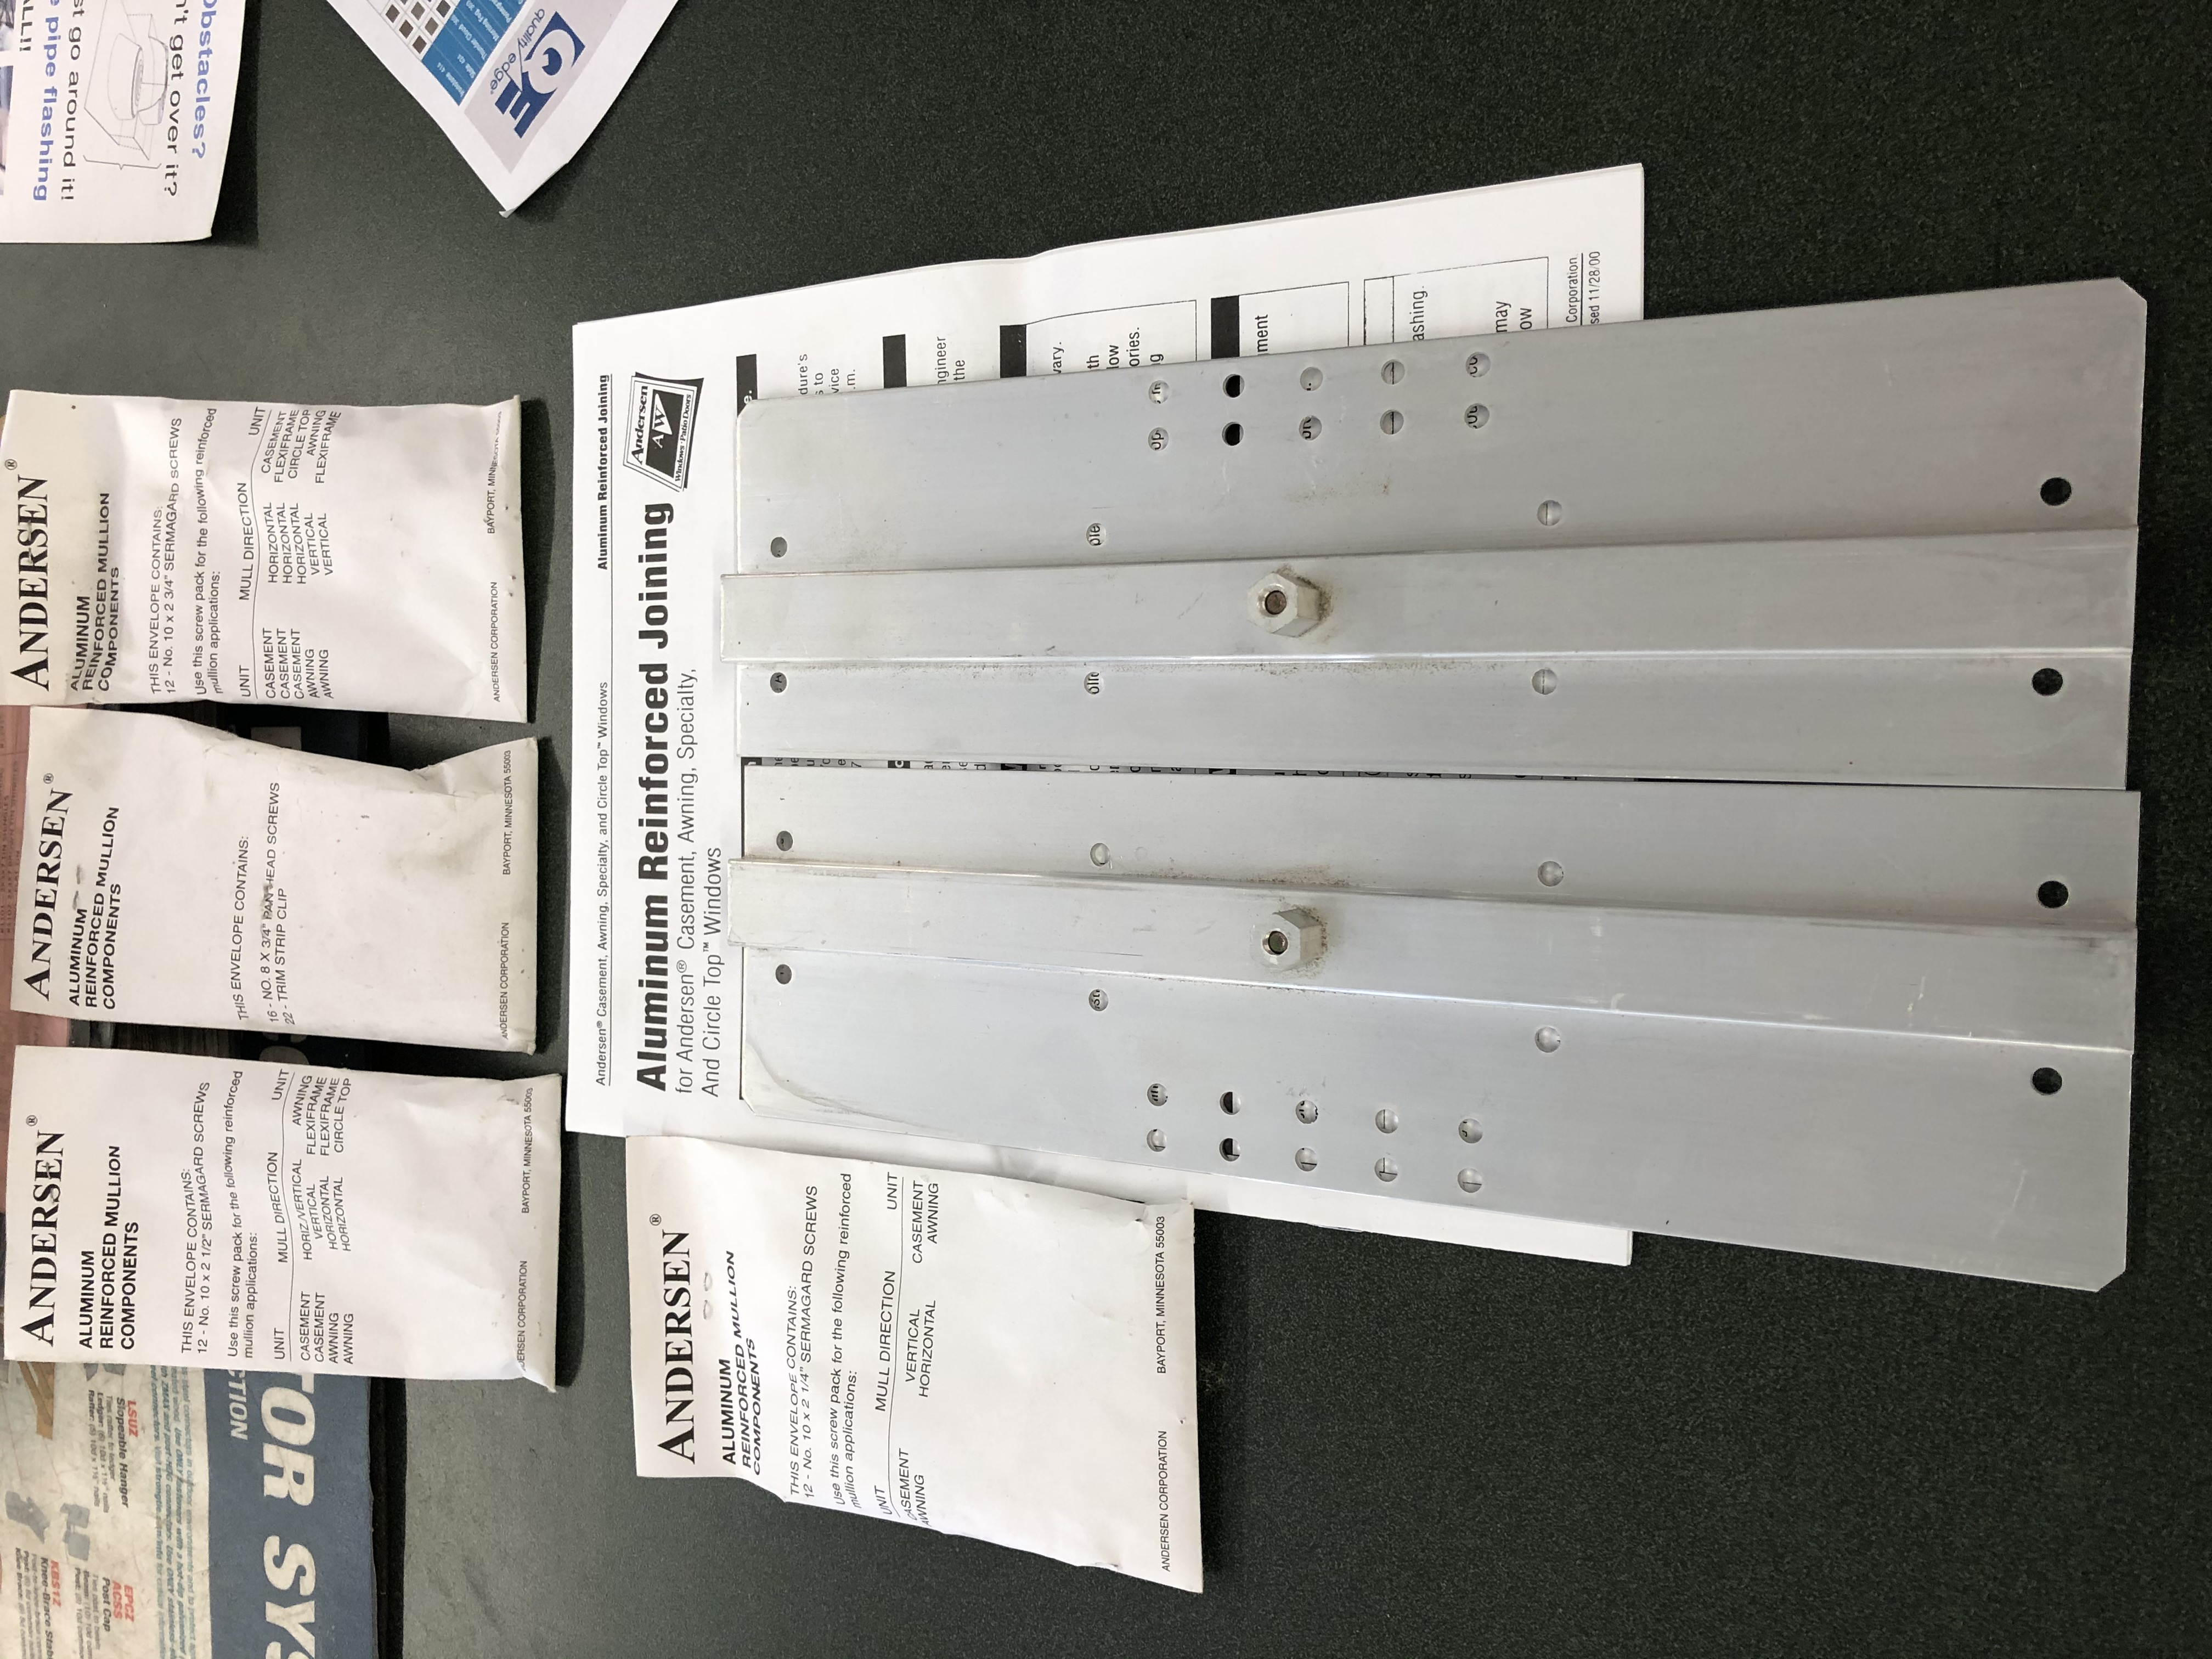 Andersen Aluminum Reinforced Joining End Plate Narrow Mullion Kit Part #2340412